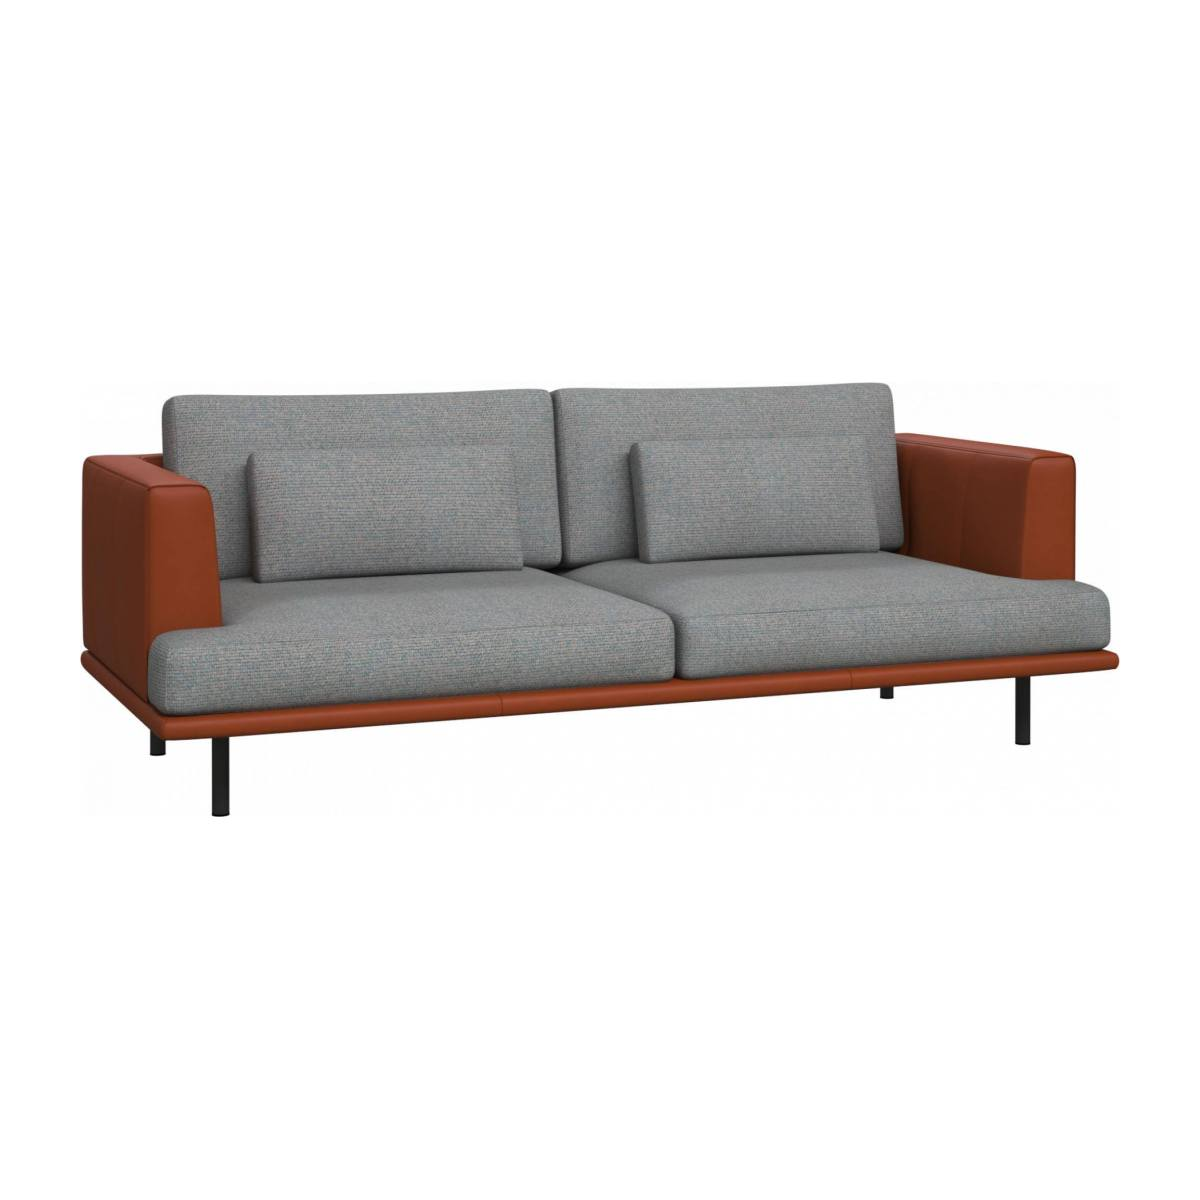 3 seater sofa in Lecce fabric, blue reef with base and armrests in brown leather n°3